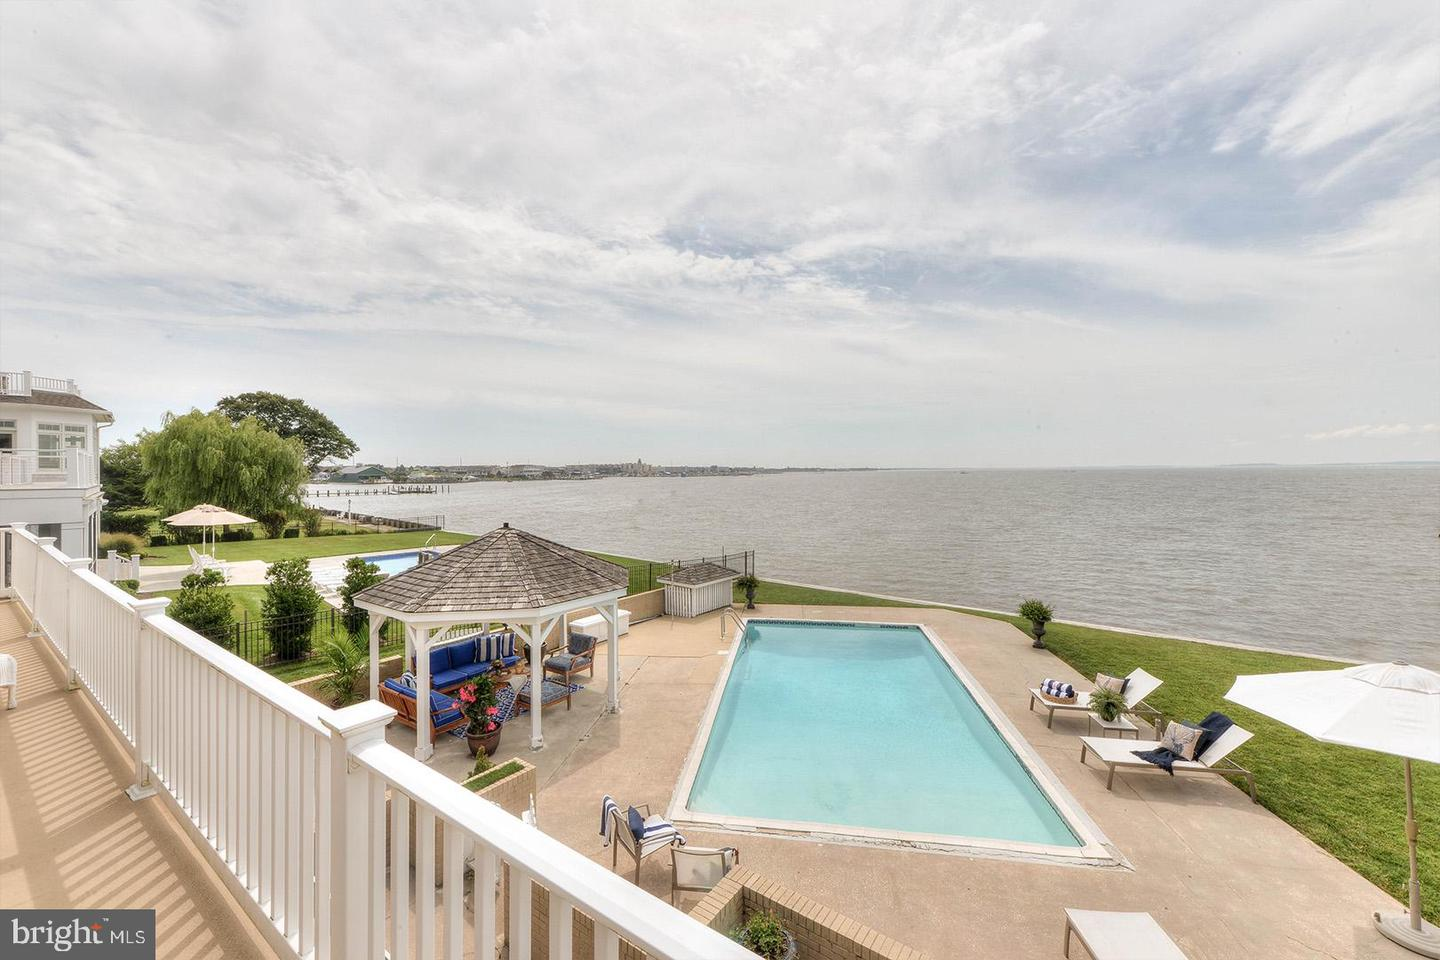 DESU146280-301986130977-2019-10-25-13-18-17 316 Salisbury St | Rehoboth Beach, DE Real Estate For Sale | MLS# Desu146280  - Rehoboth Beach Real Estate - Bryce Lingo and Shaun Tull REALTORS, Rehoboth Beach, Delaware